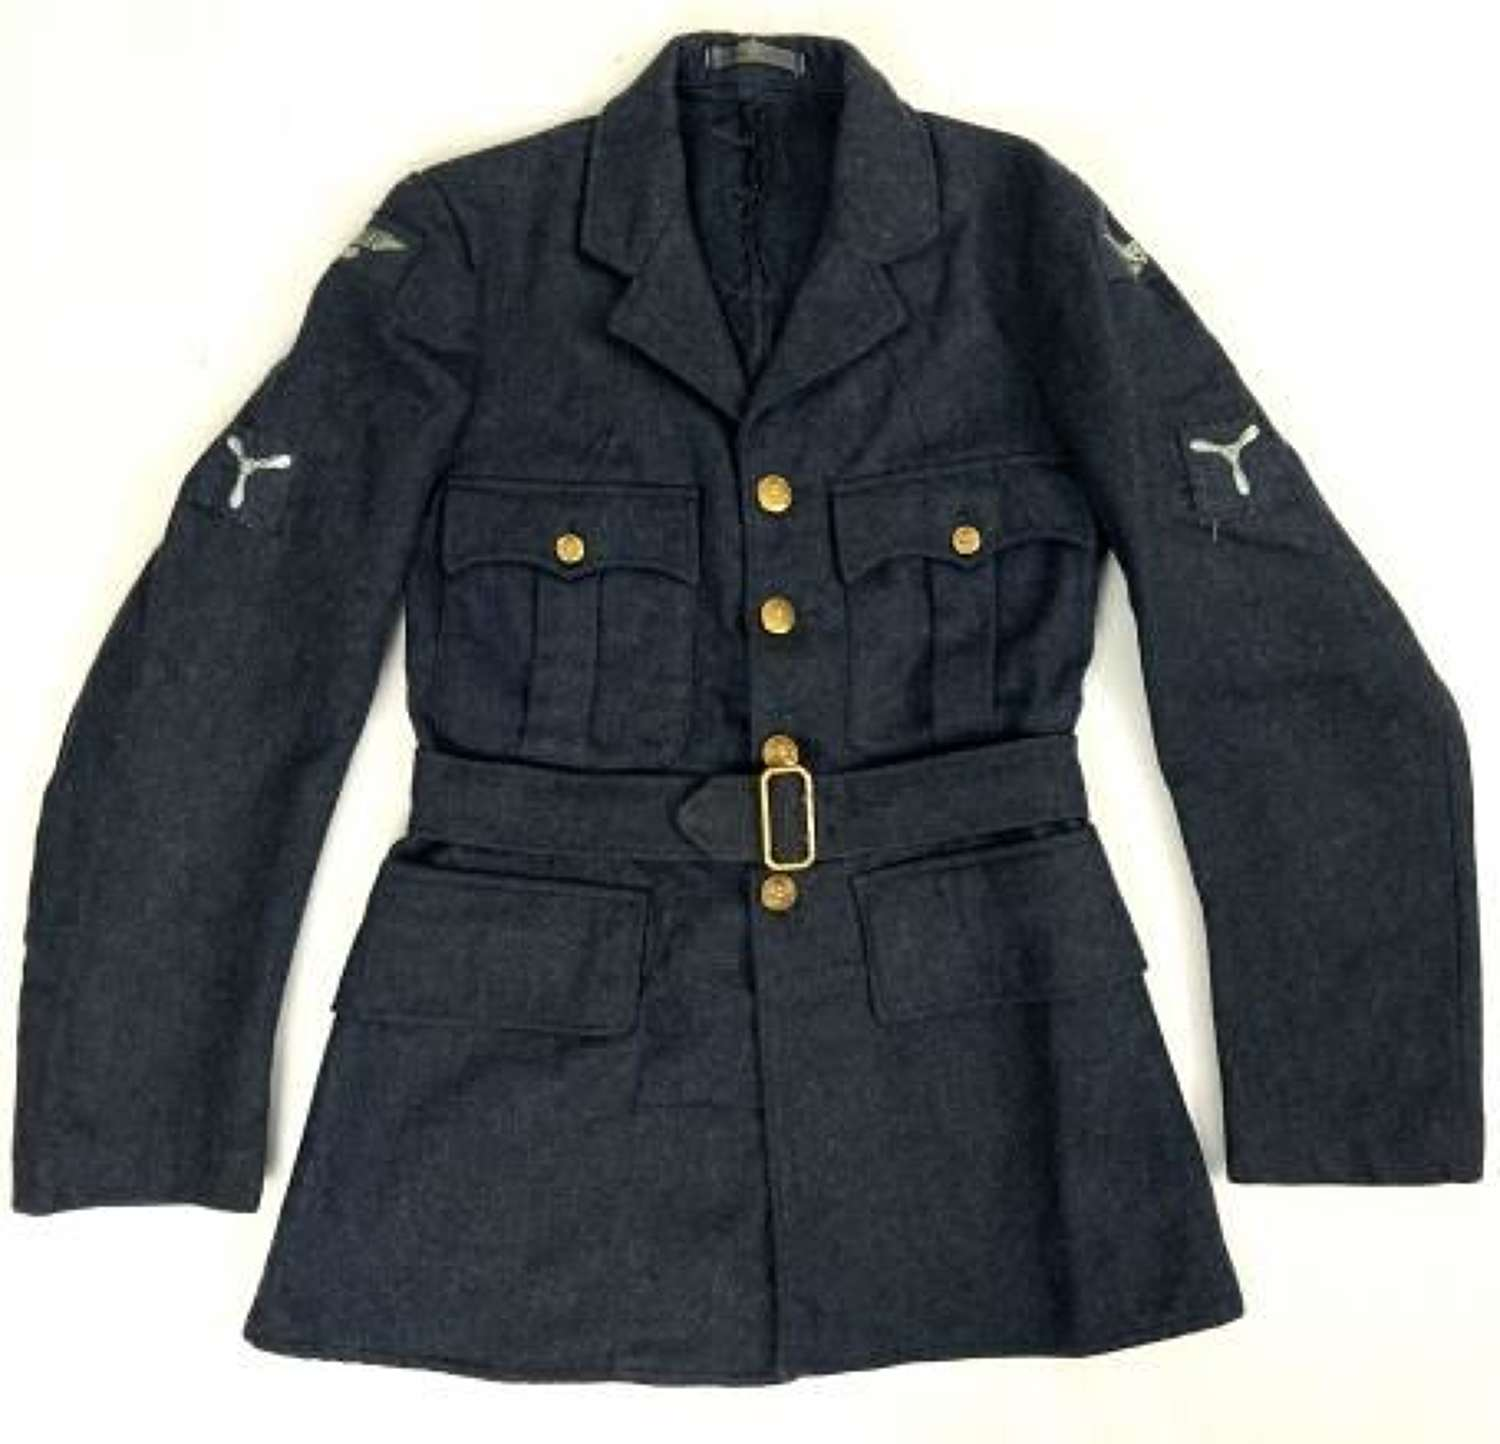 Original 1955 Dated RAF Ordinary Airman's Tunic - Size 10